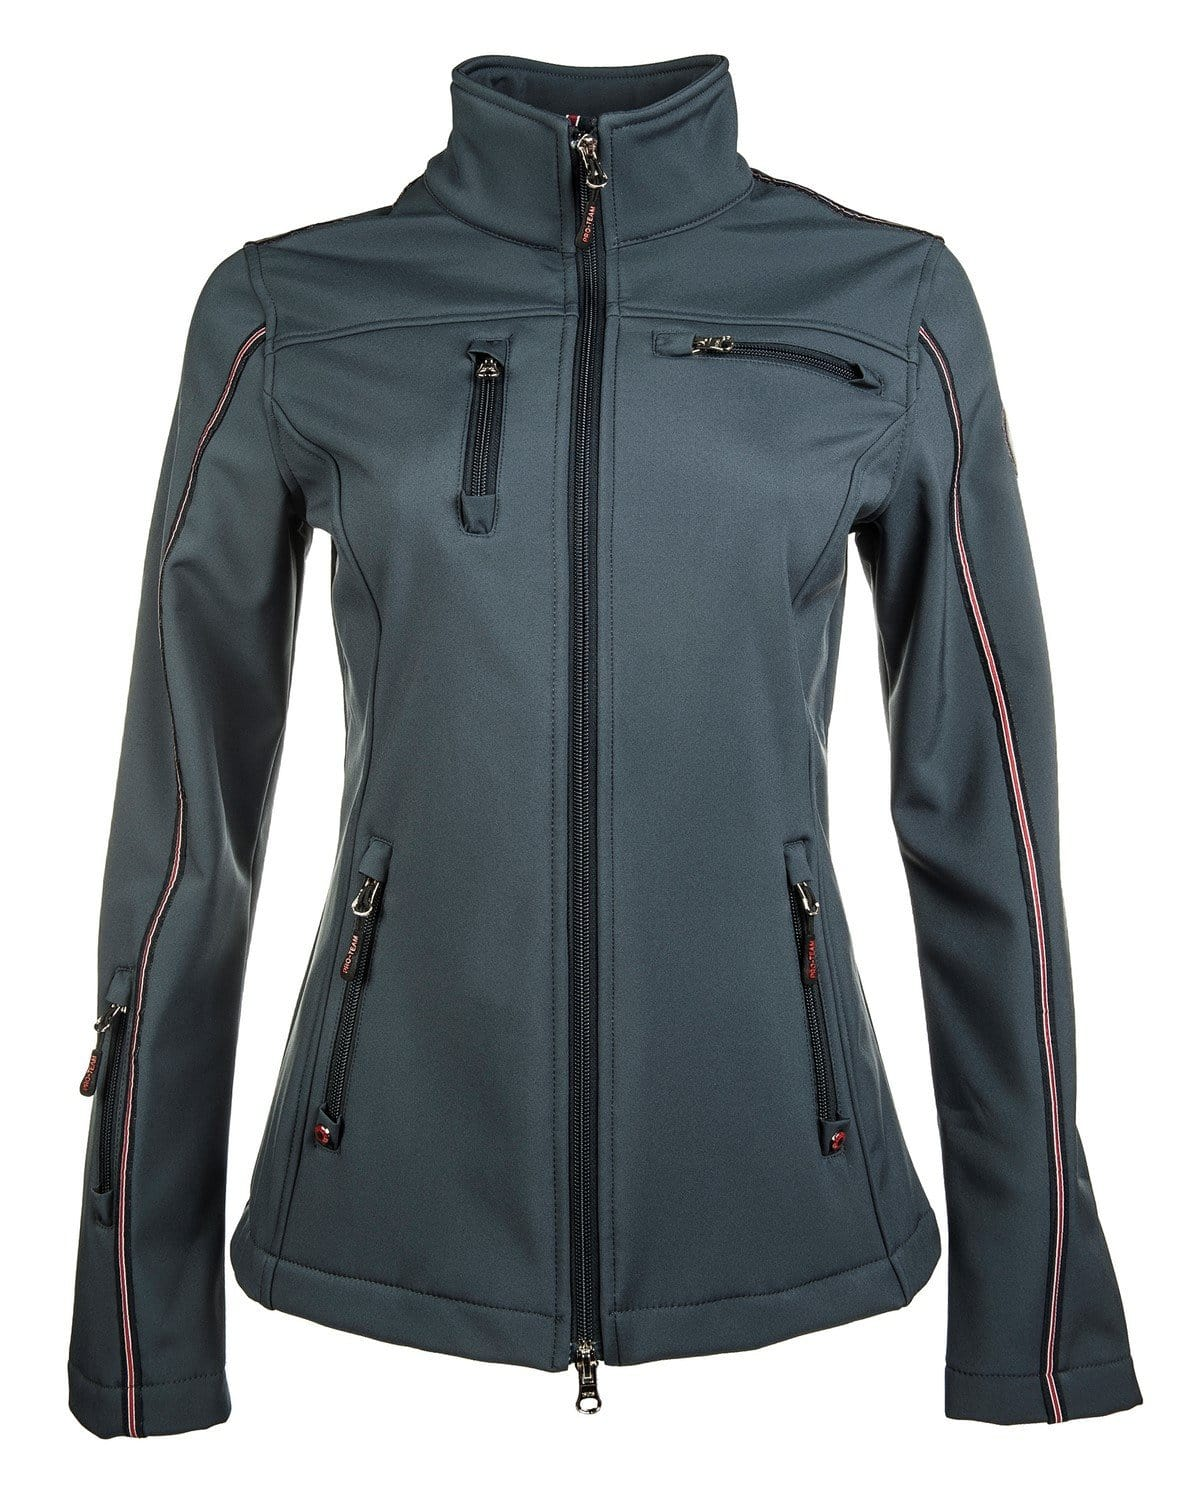 HKM Pro Team Dynamic Softshell Riding Jacket in Deep Blue